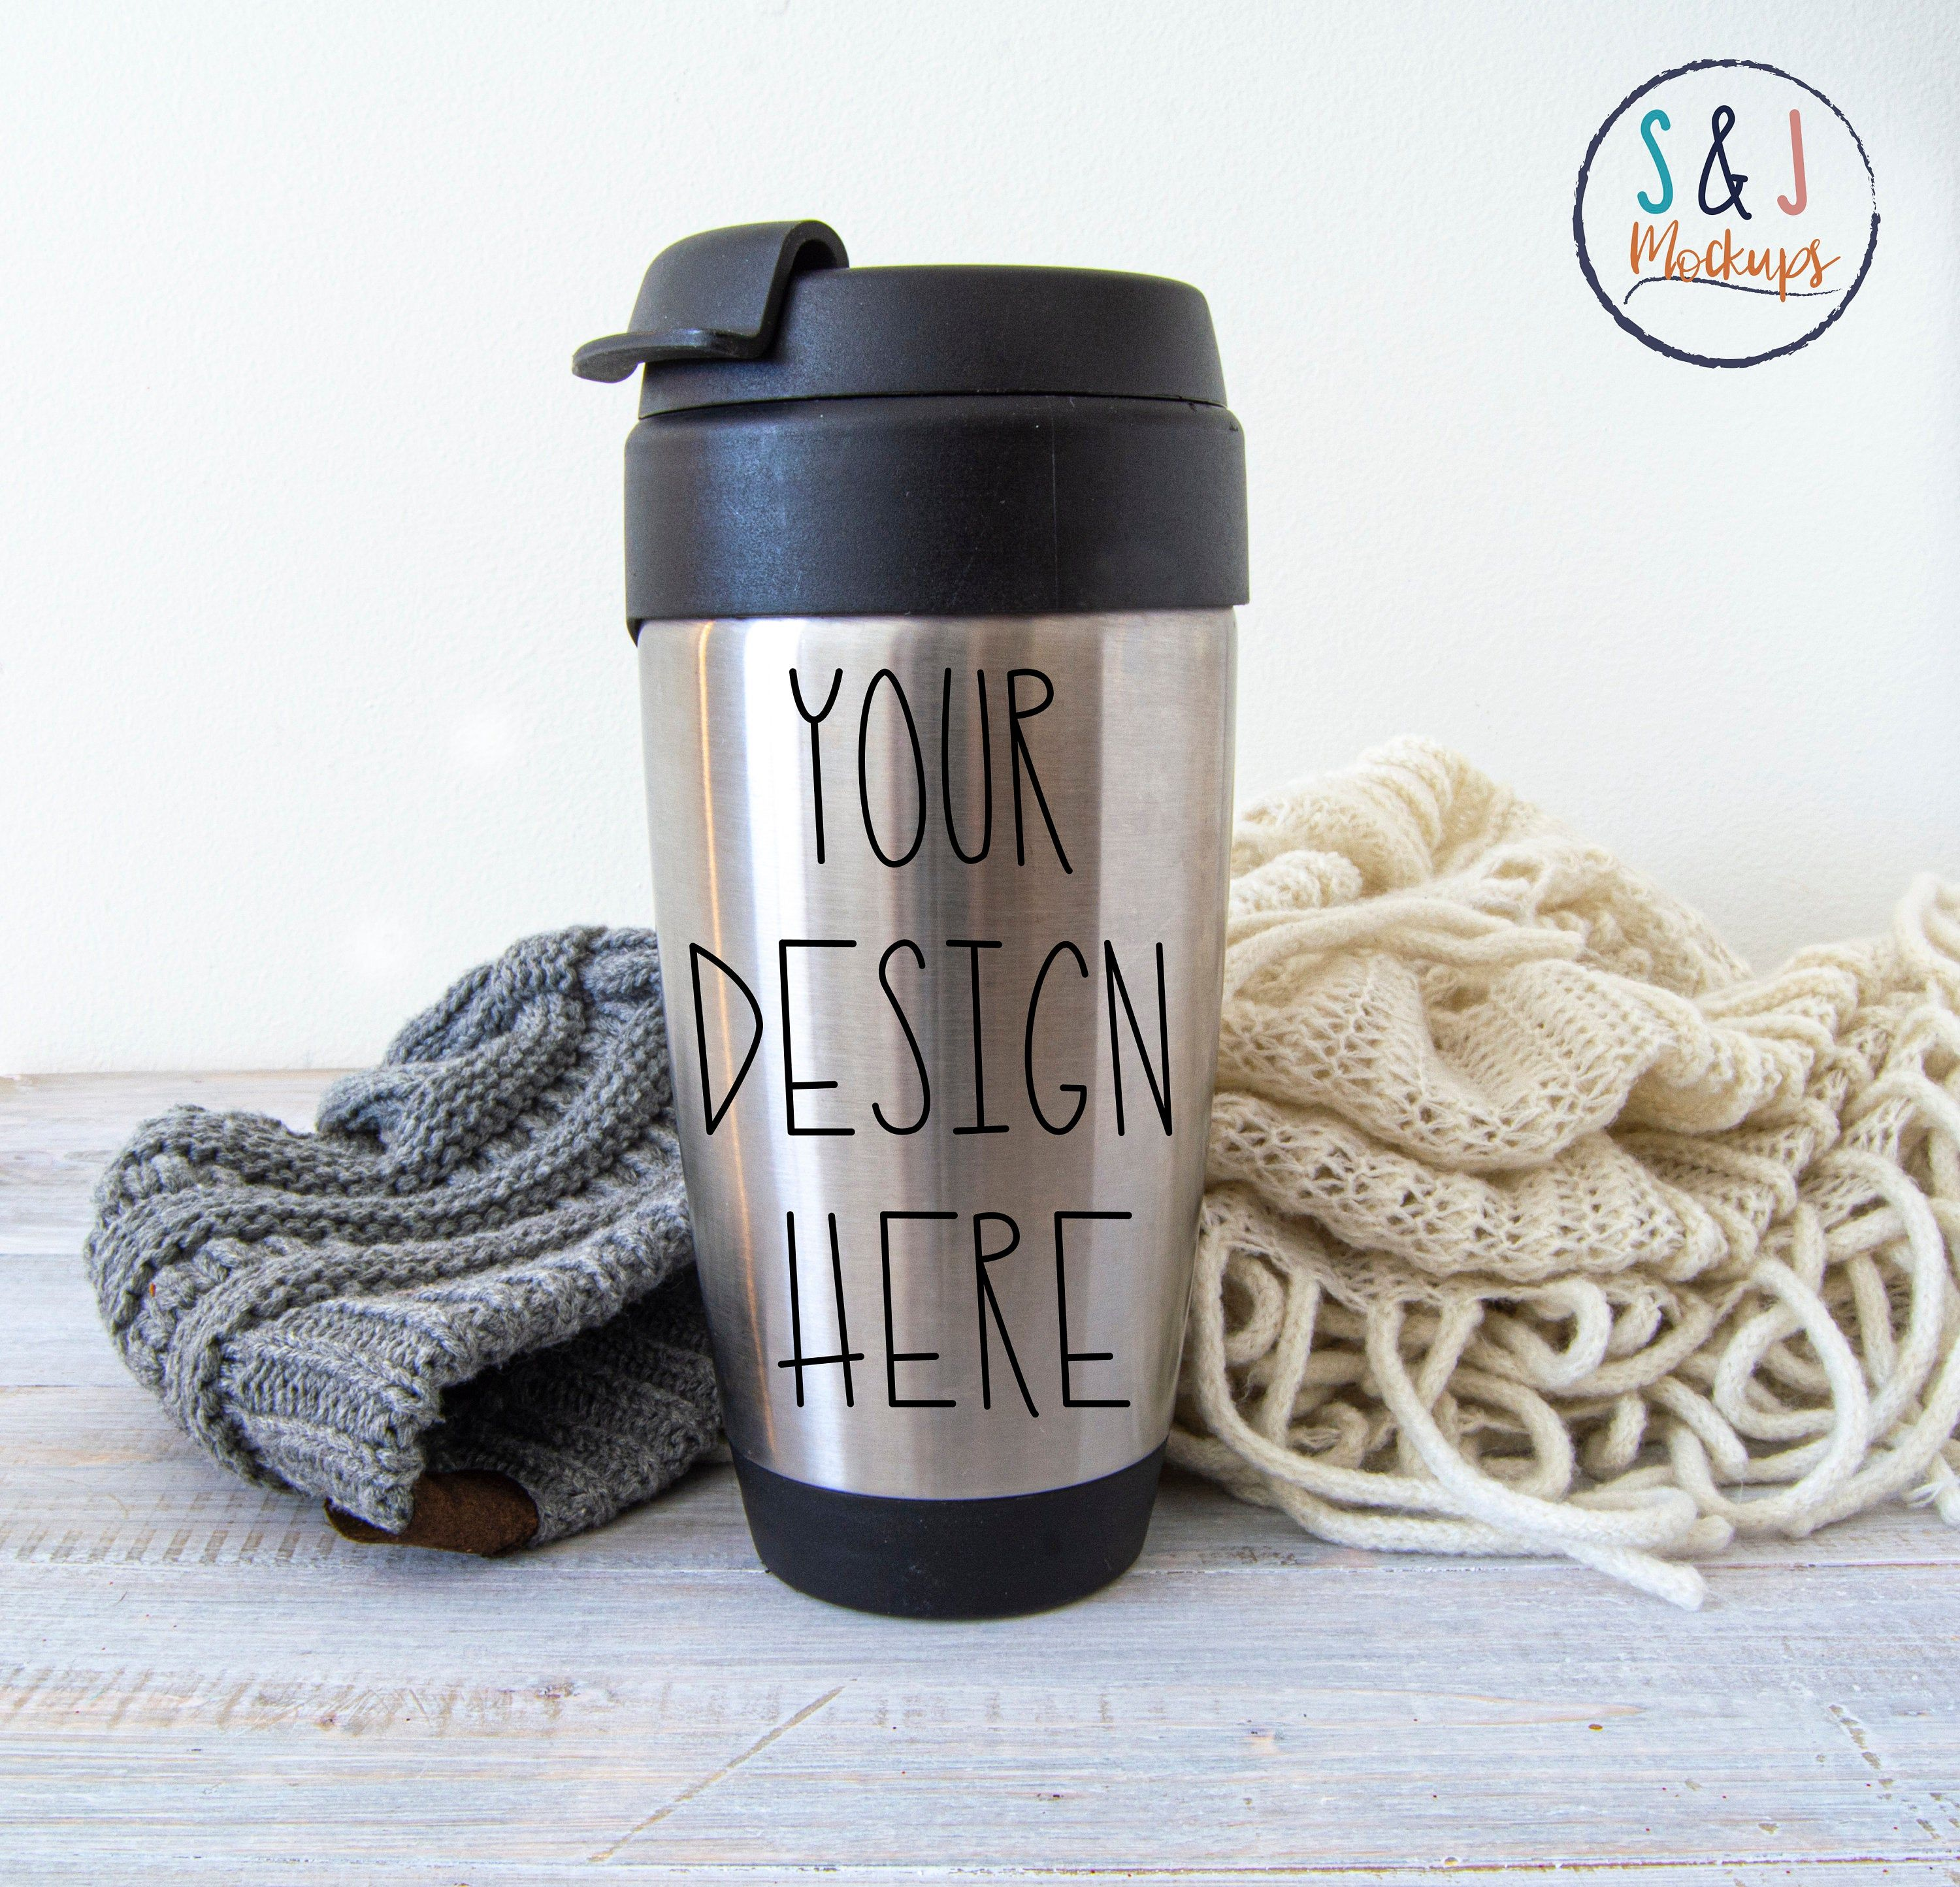 Travel mug mockup, Winter coffee cup photo, Mug template